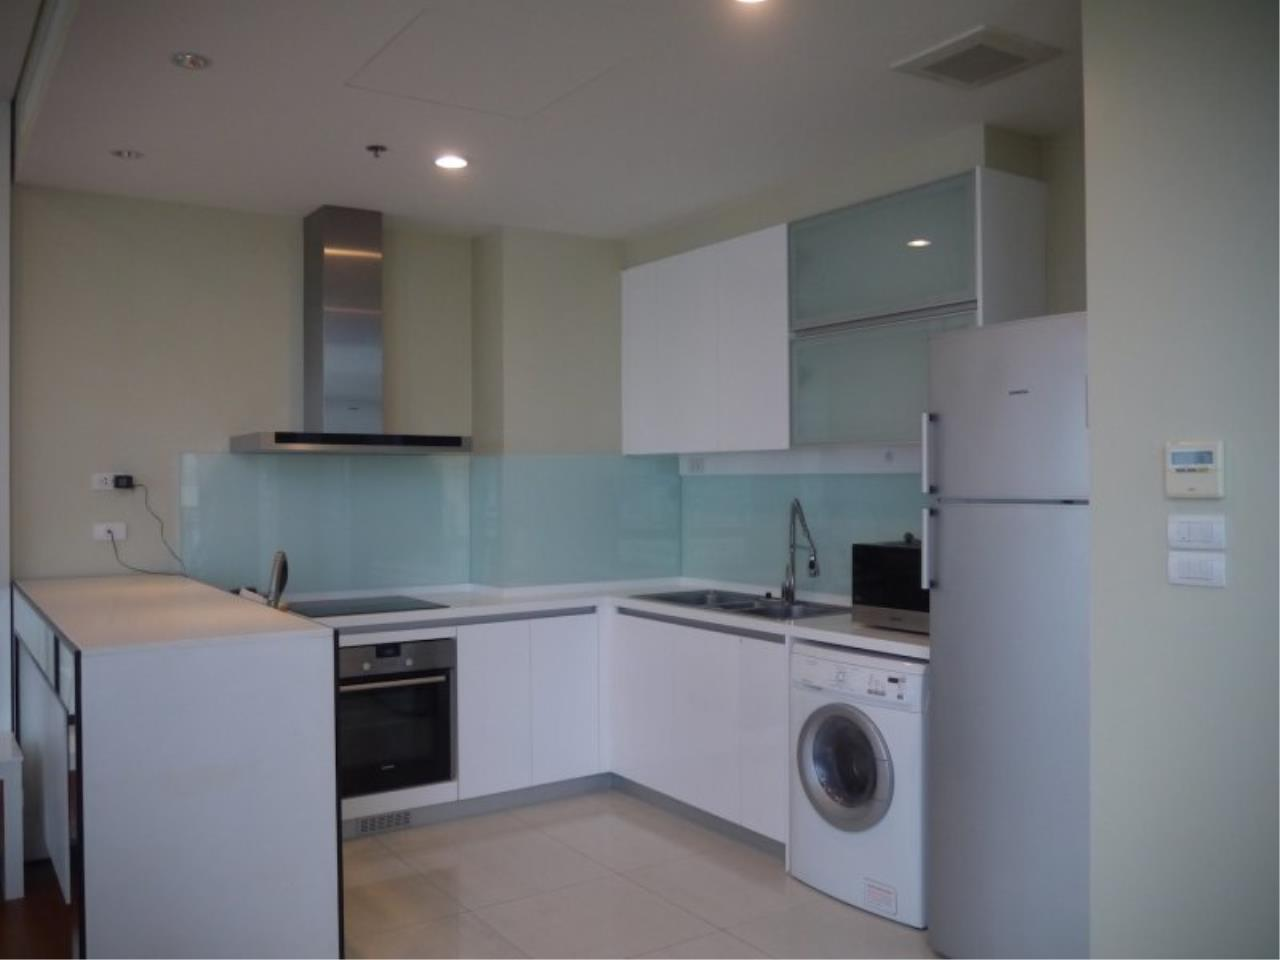 Piri Property Agency's Duplex 3 Bedrooms in the Bright Condo for sale on high floor 3